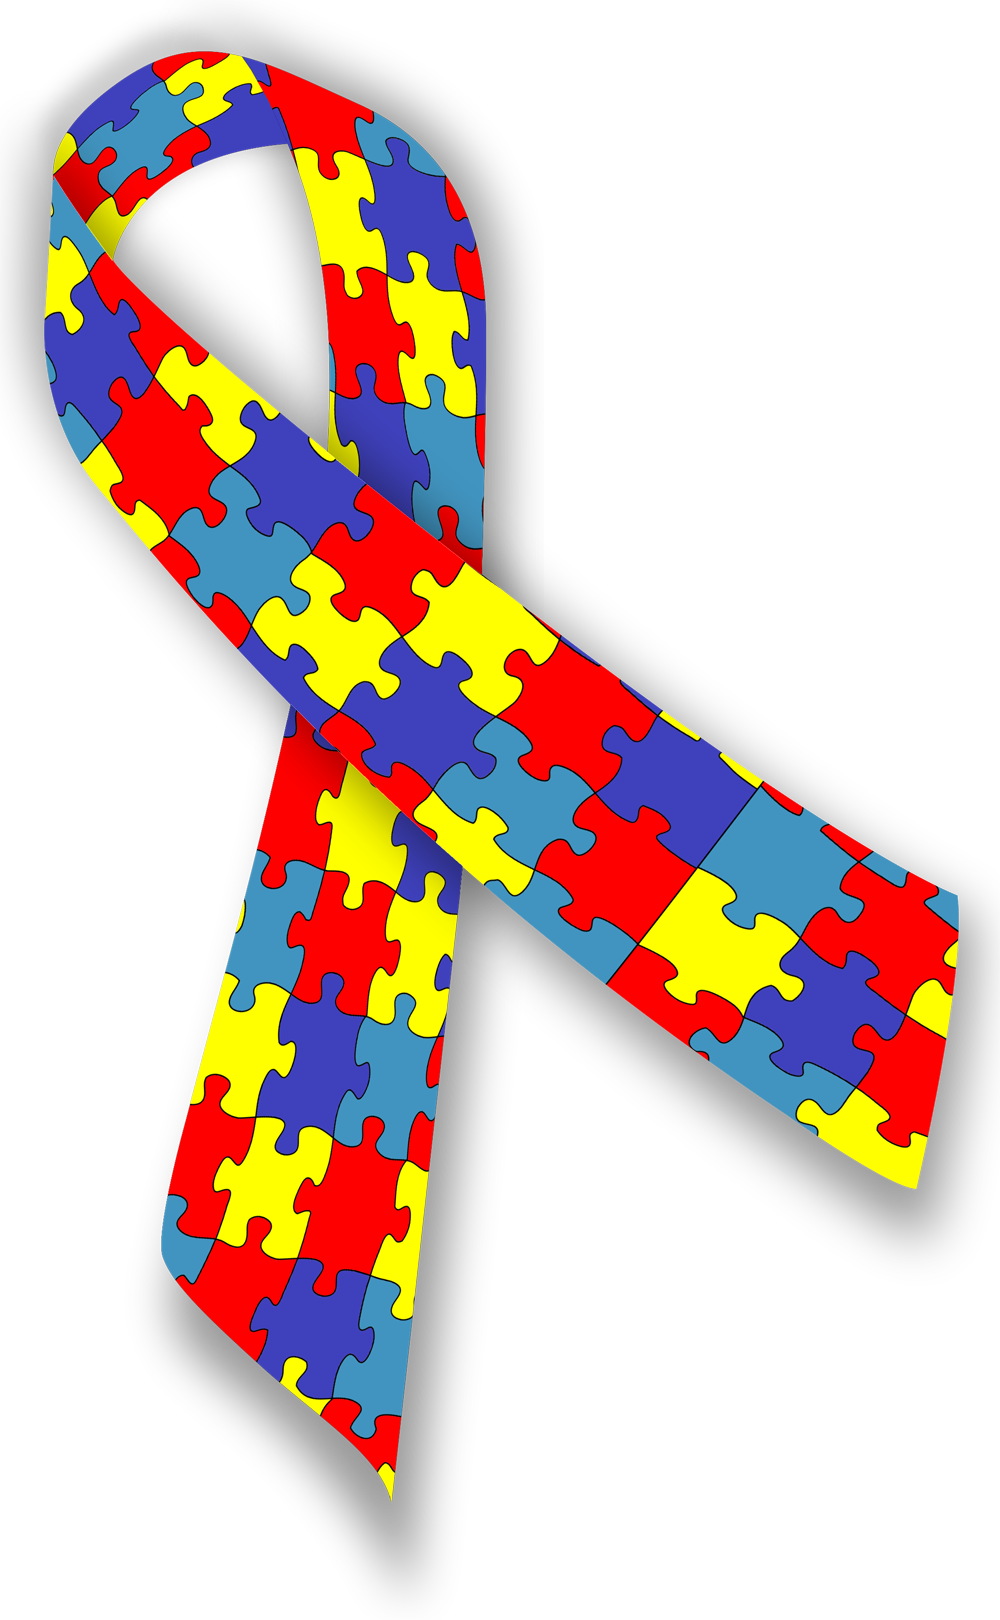 <b>Autism</b> Awareness Campaign UK - Wikipedia, the free encyclopedia